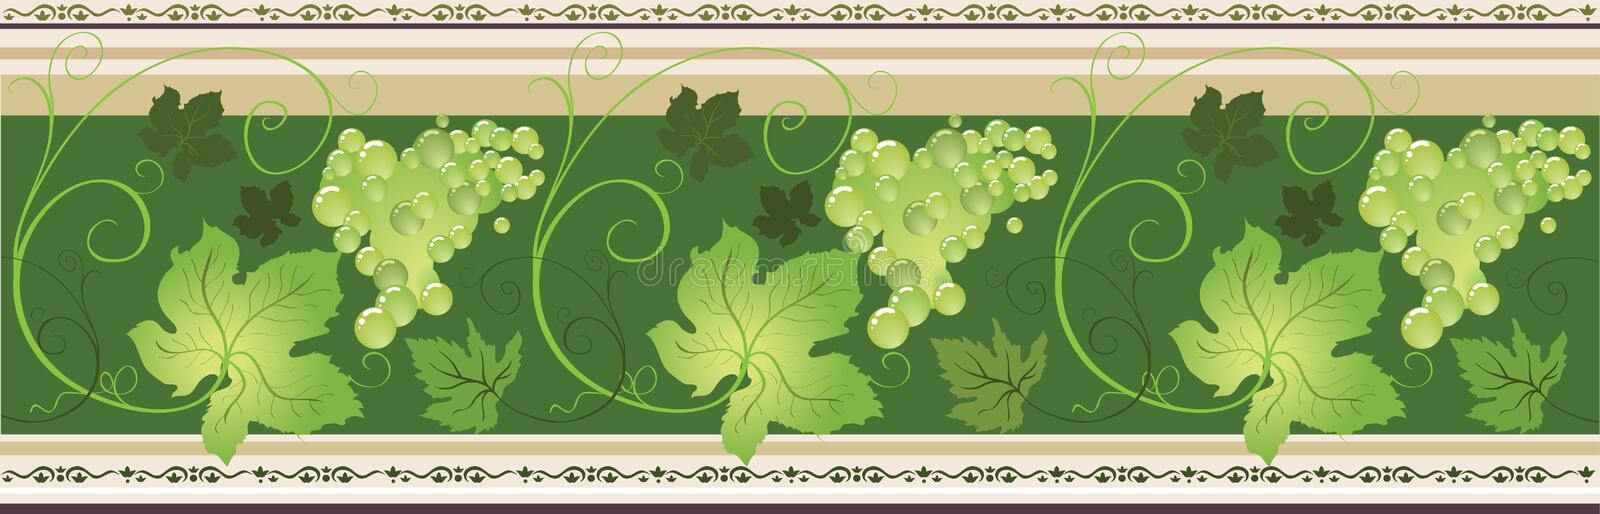 Border with grape vector illustration